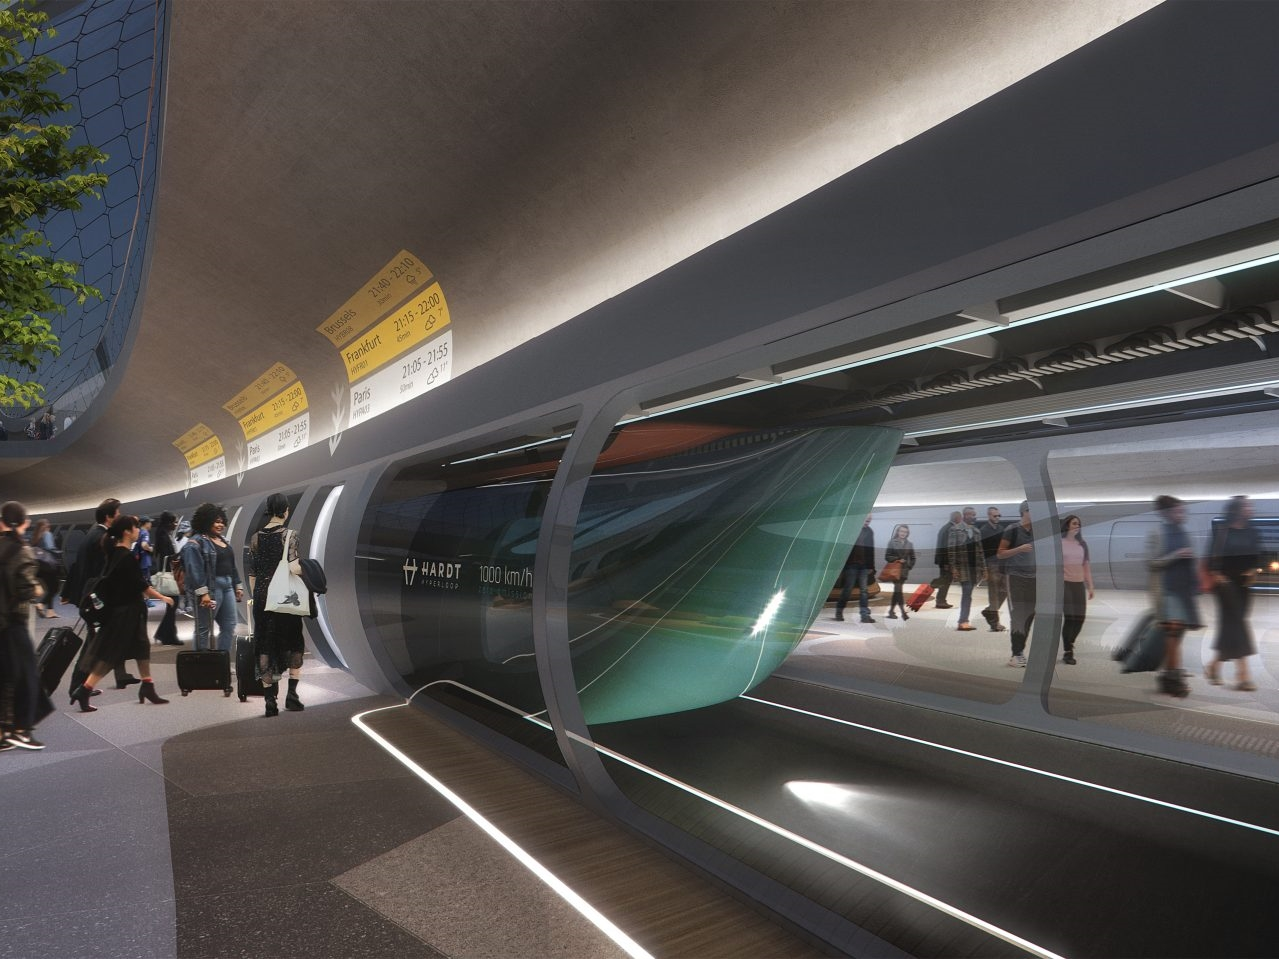 Hyperloop Development Program will investigate freight transport via tube network